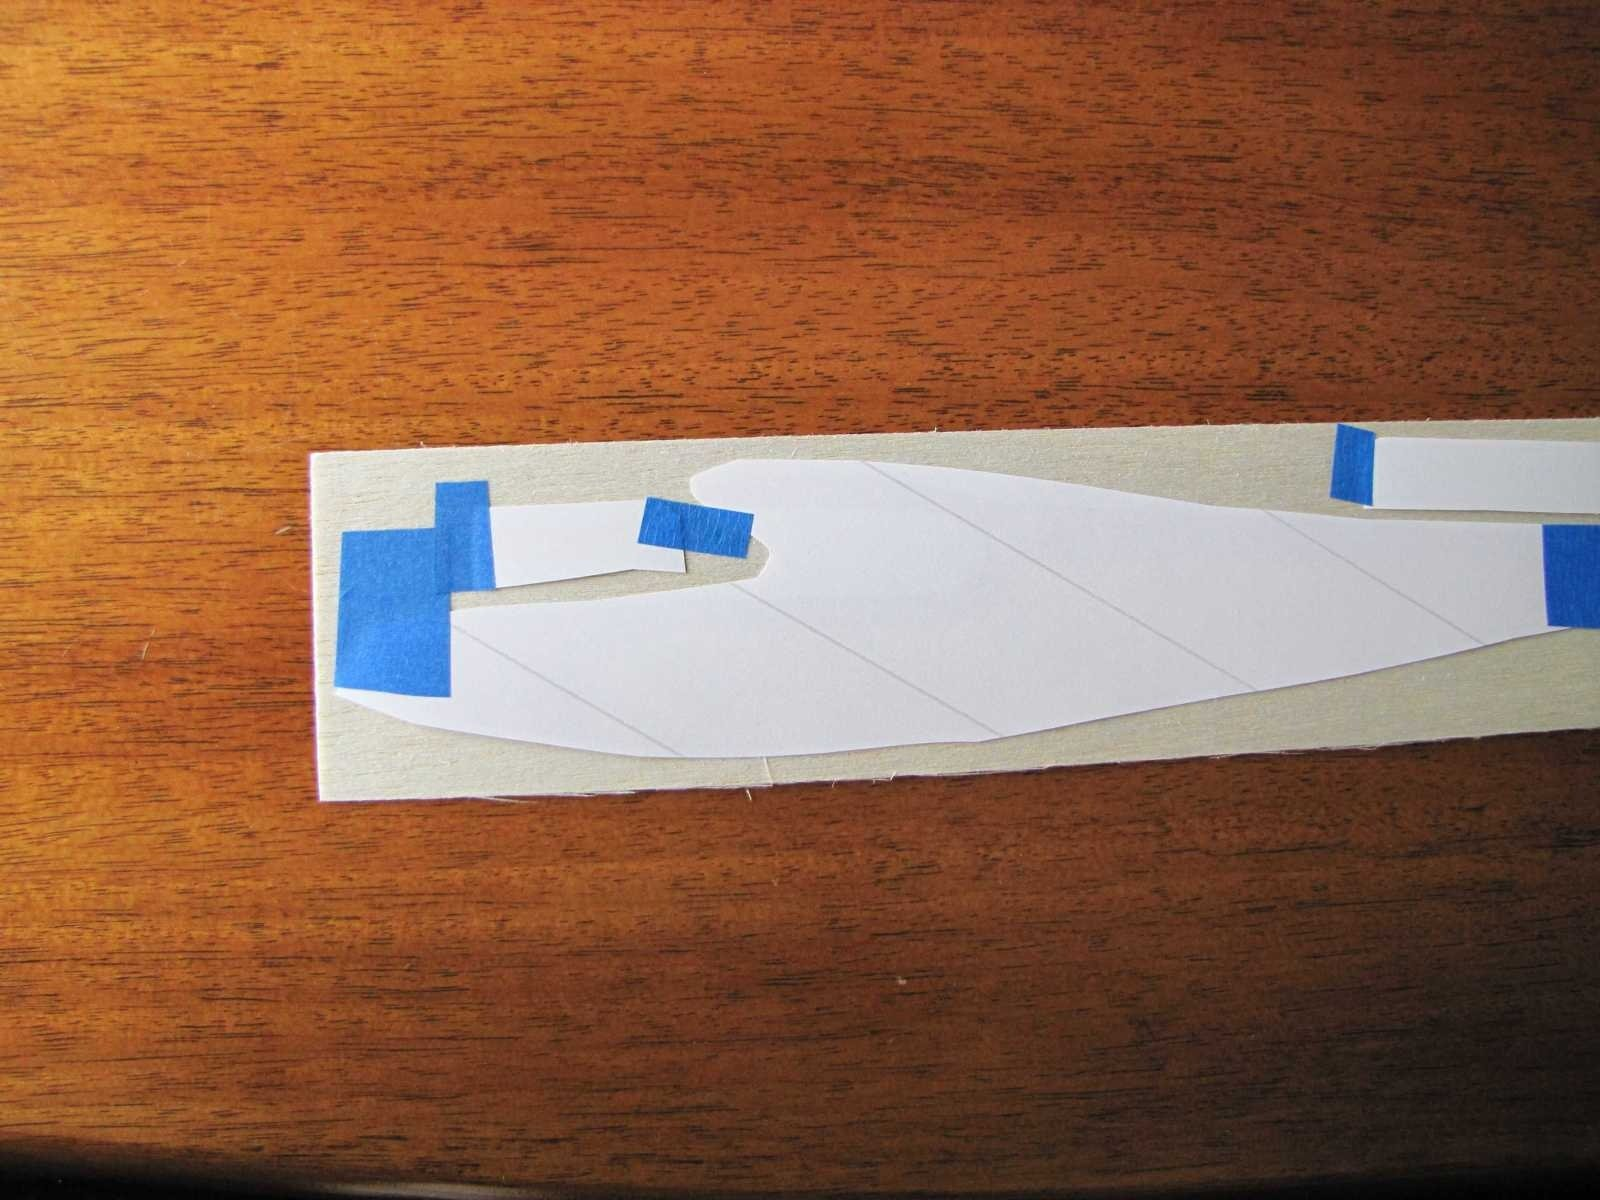 "Place the printed parts on your sheet of balsa. Any thickness balsa sheet can be used. The example shown is 1/32"" balsa sheet. Some tape may be useful in keeping them in position. It is important that the transfer paper not move while it is being ironed or the parts will blur."